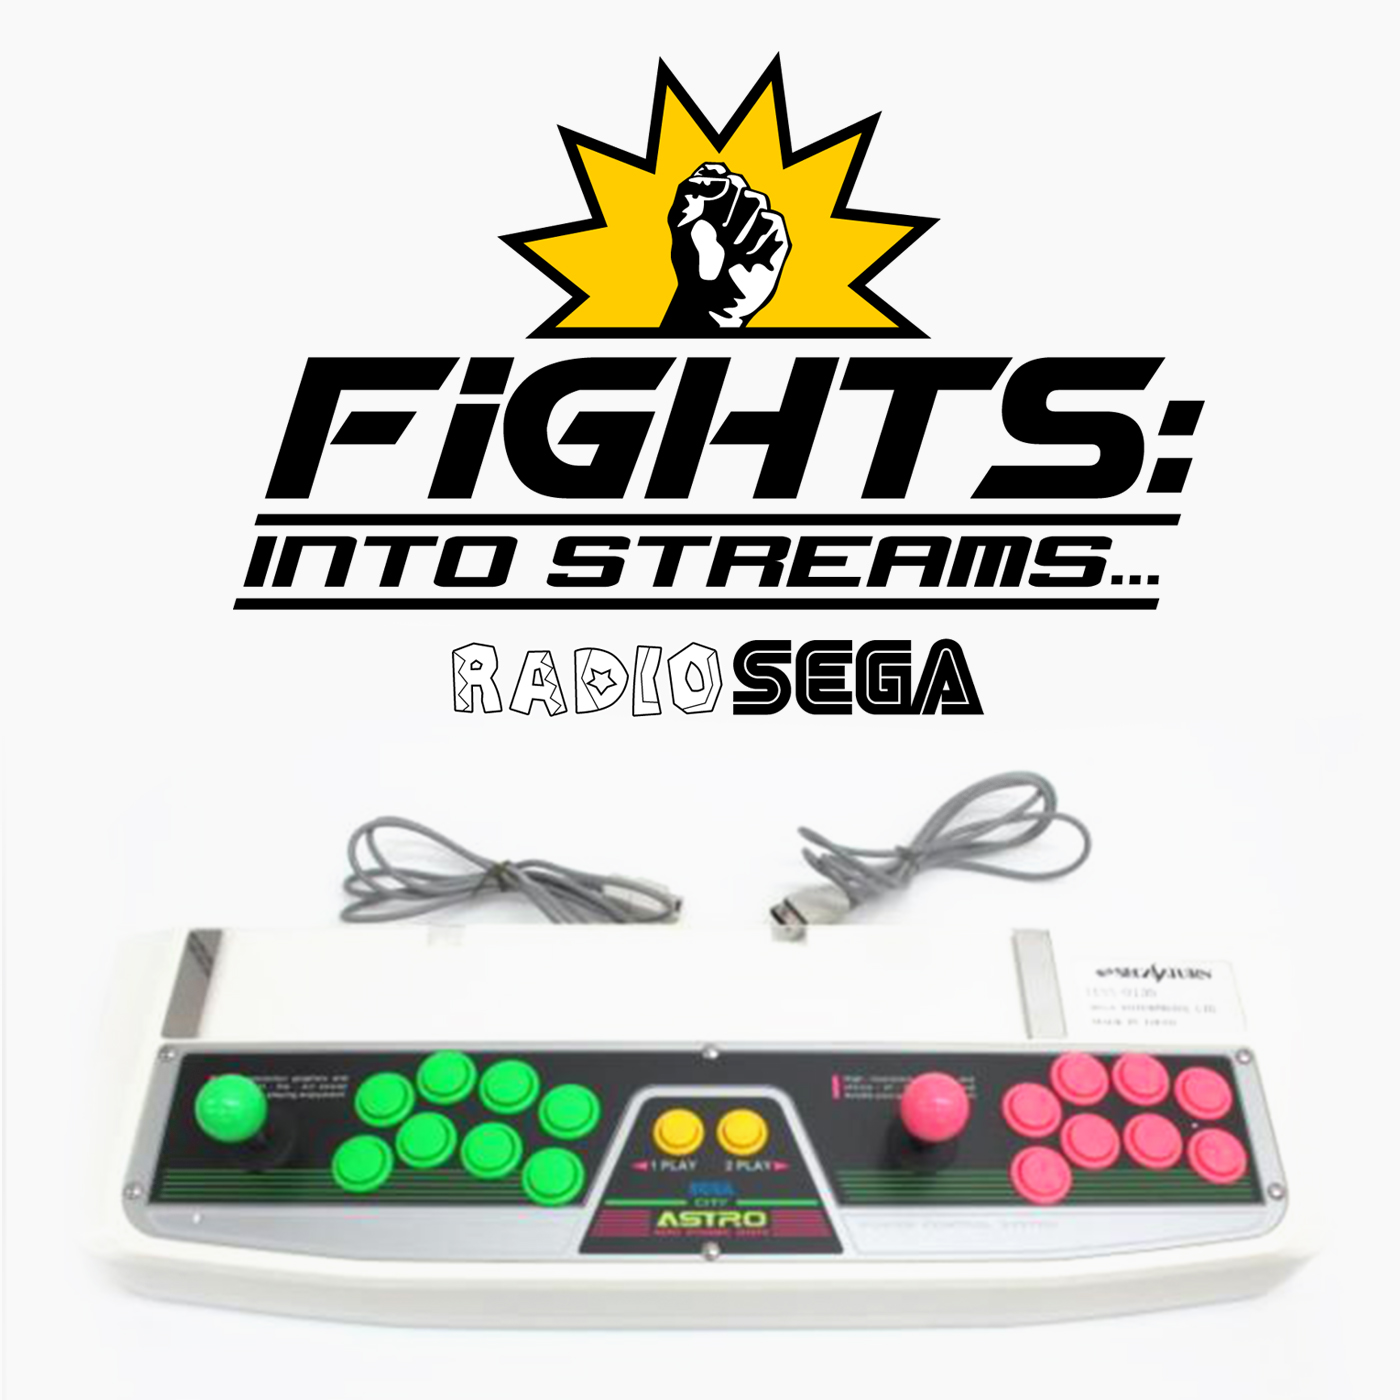 FiGHTS: into Streams...